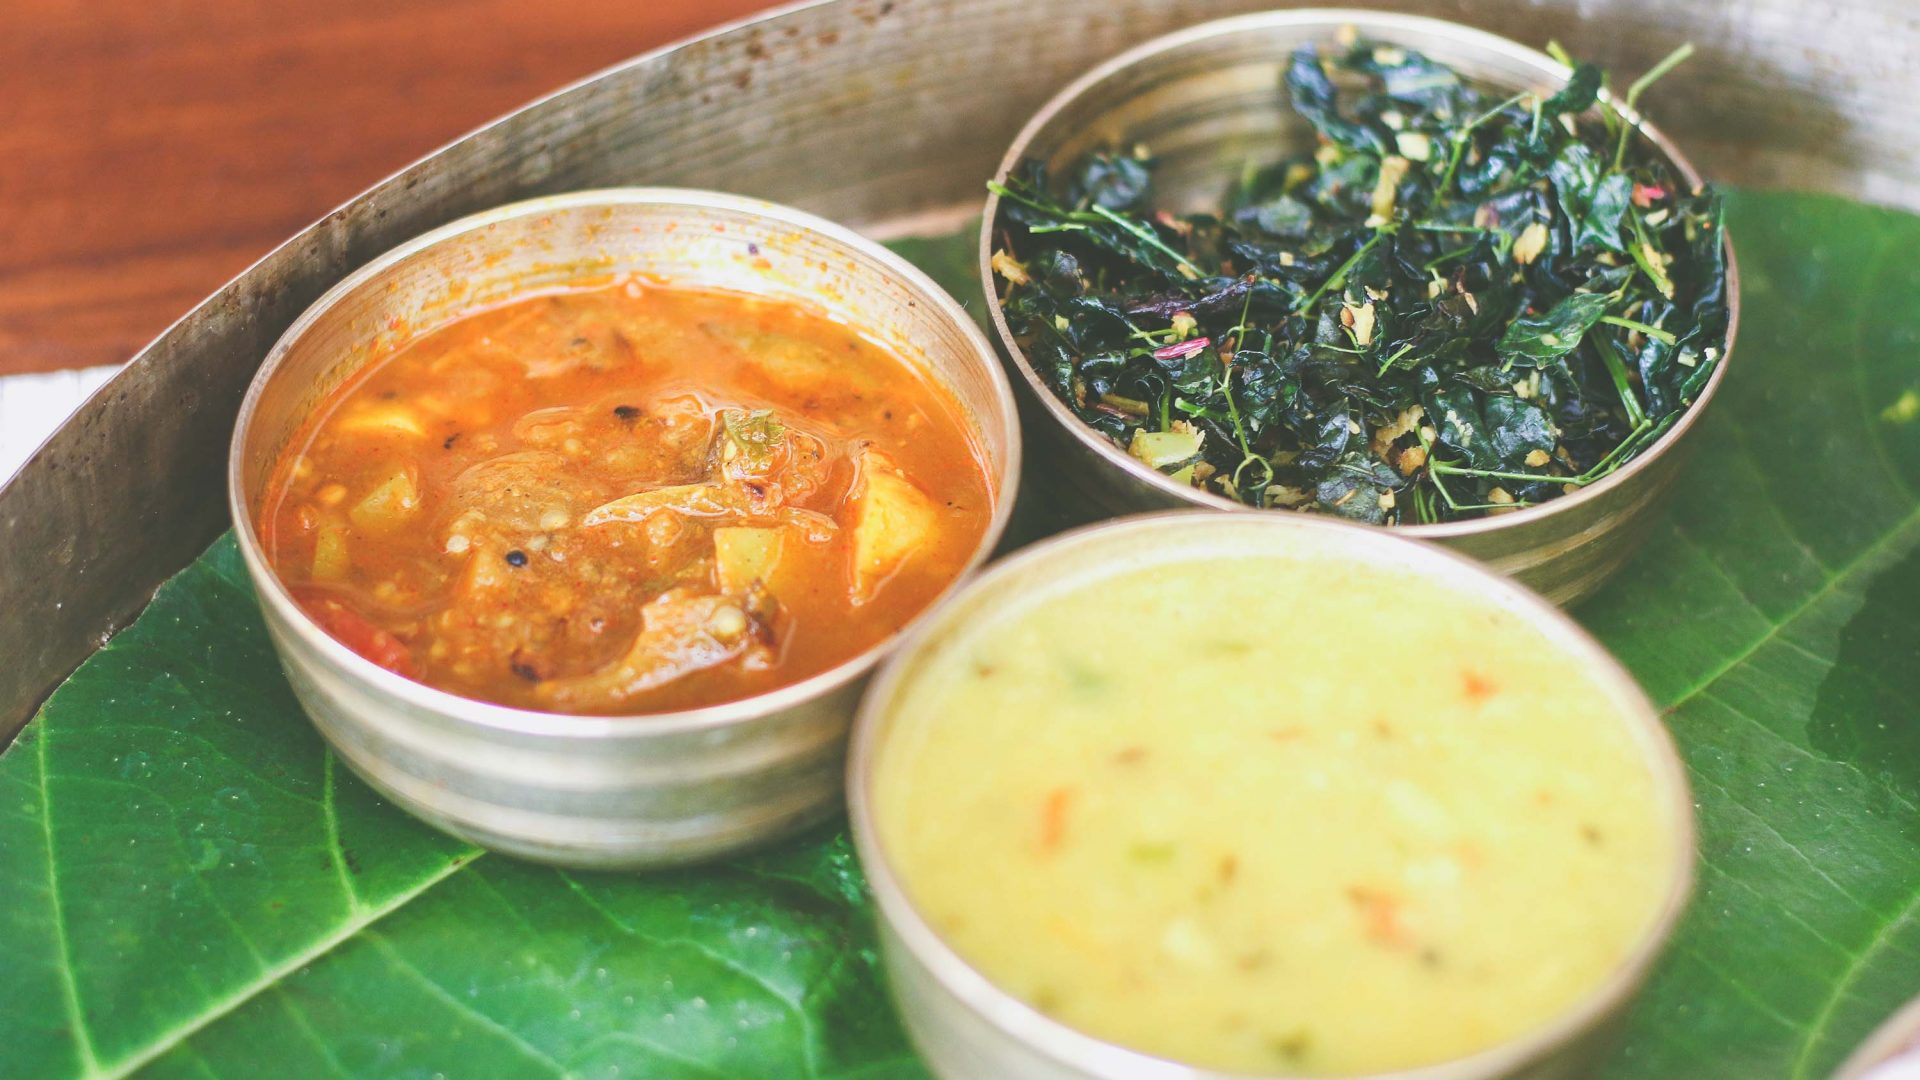 Indian meals consistent with an Ayurveda diet.